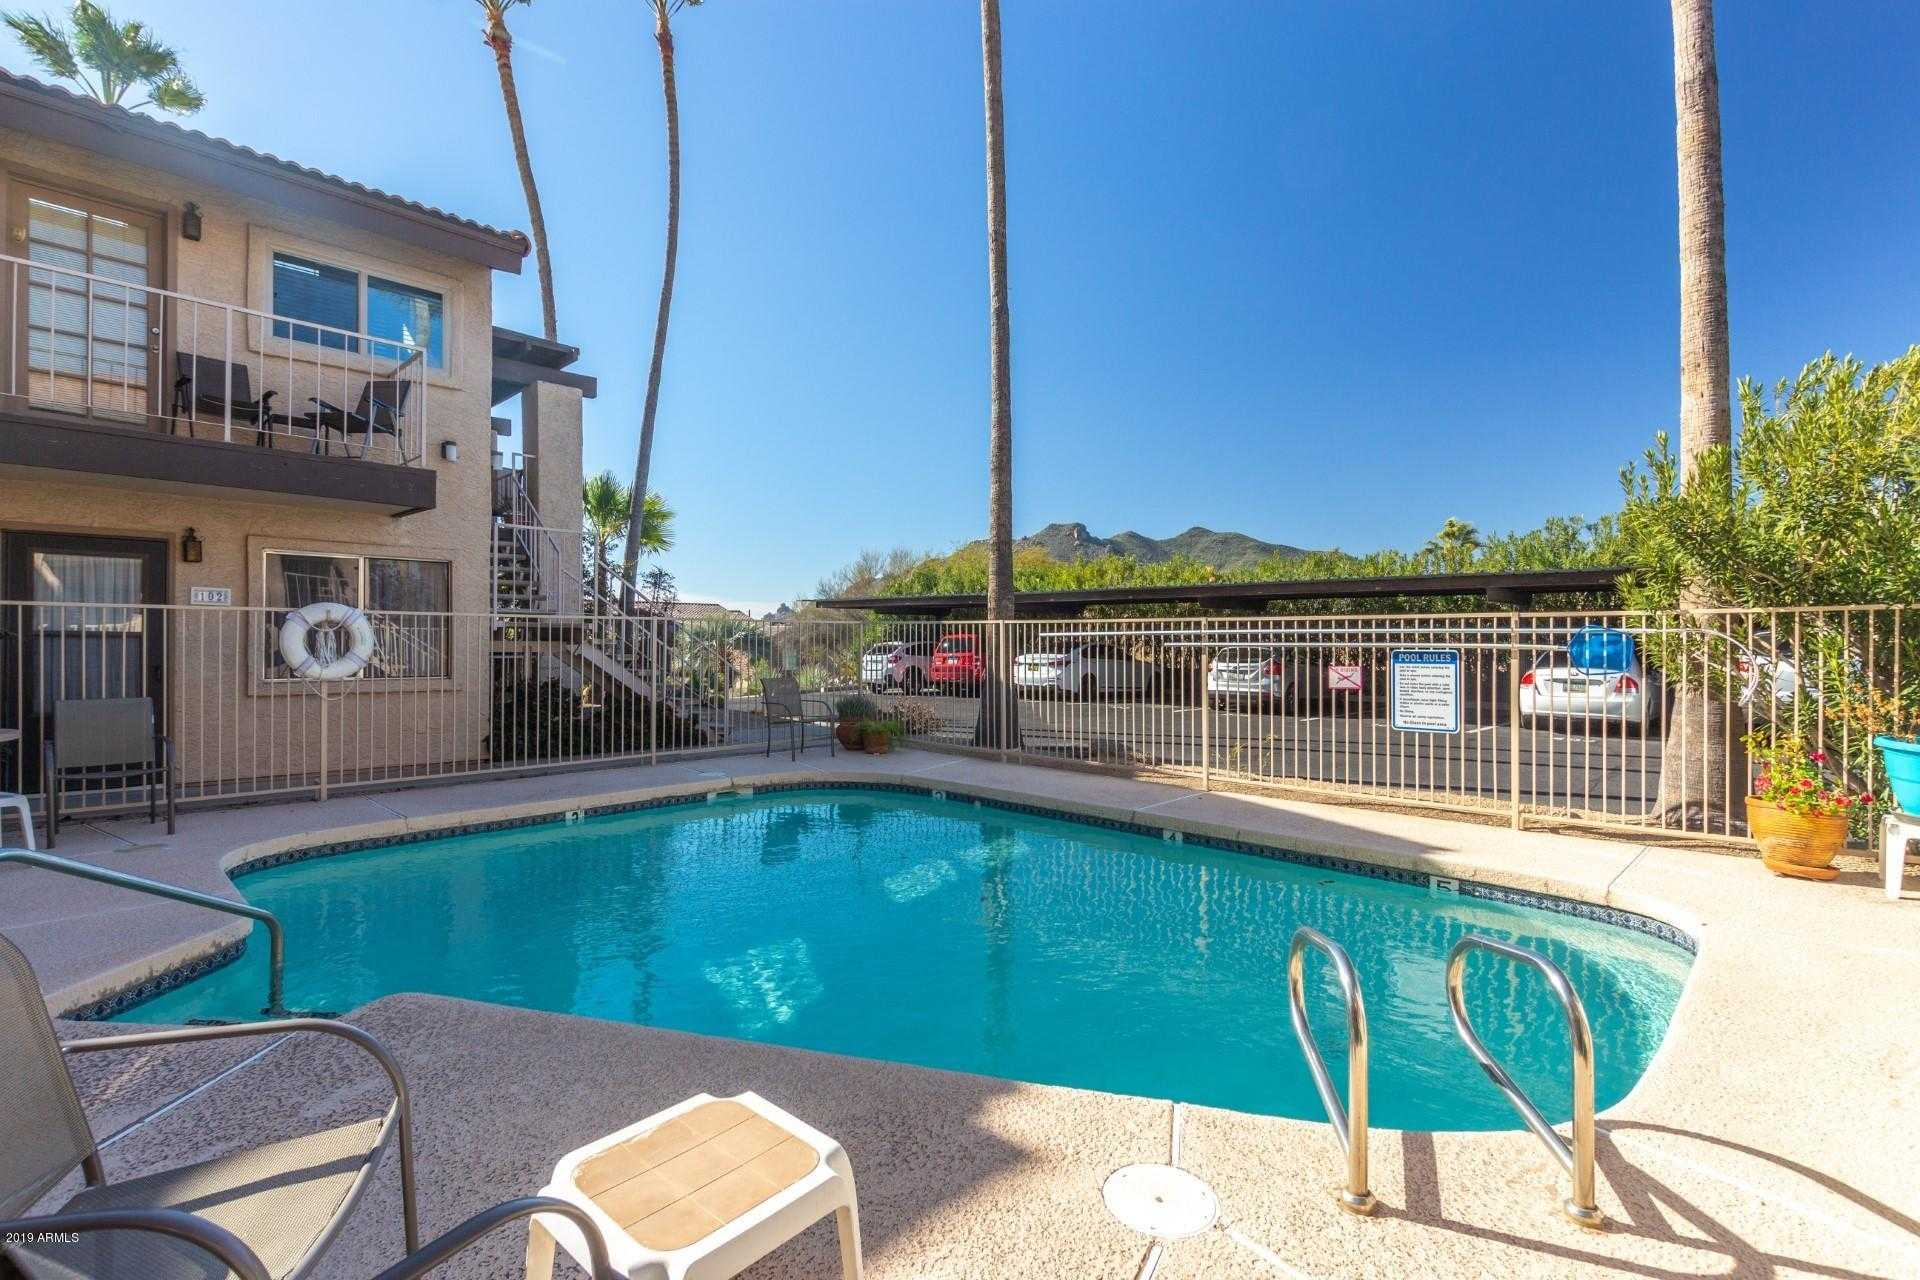 $130,000 - 1Br/1Ba -  for Sale in Carefree Palms Unit 101-106 & 201-206, Carefree